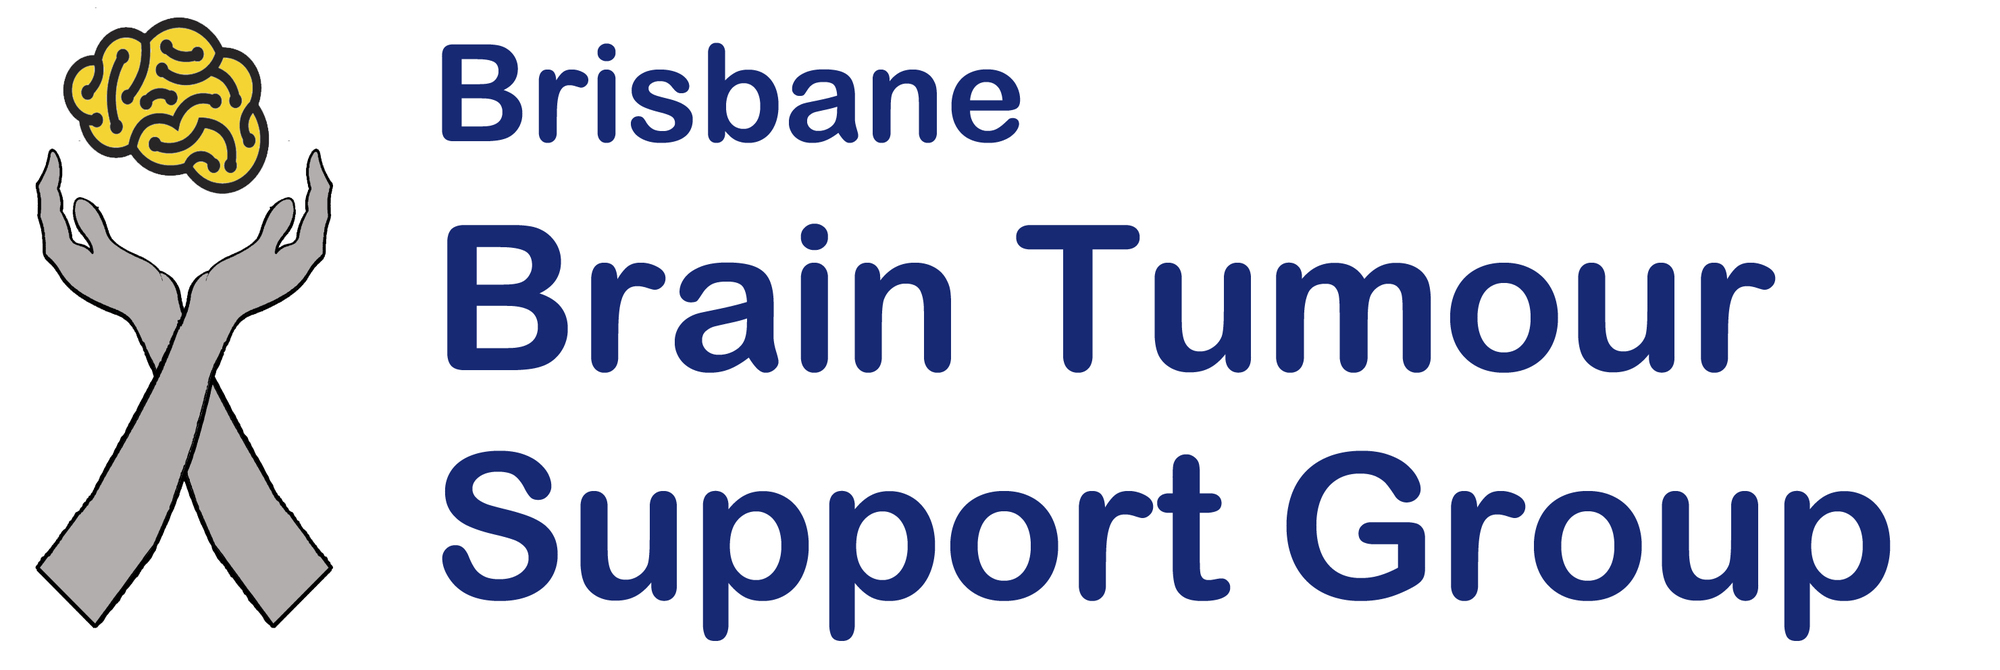 Brain Tumour Support Group